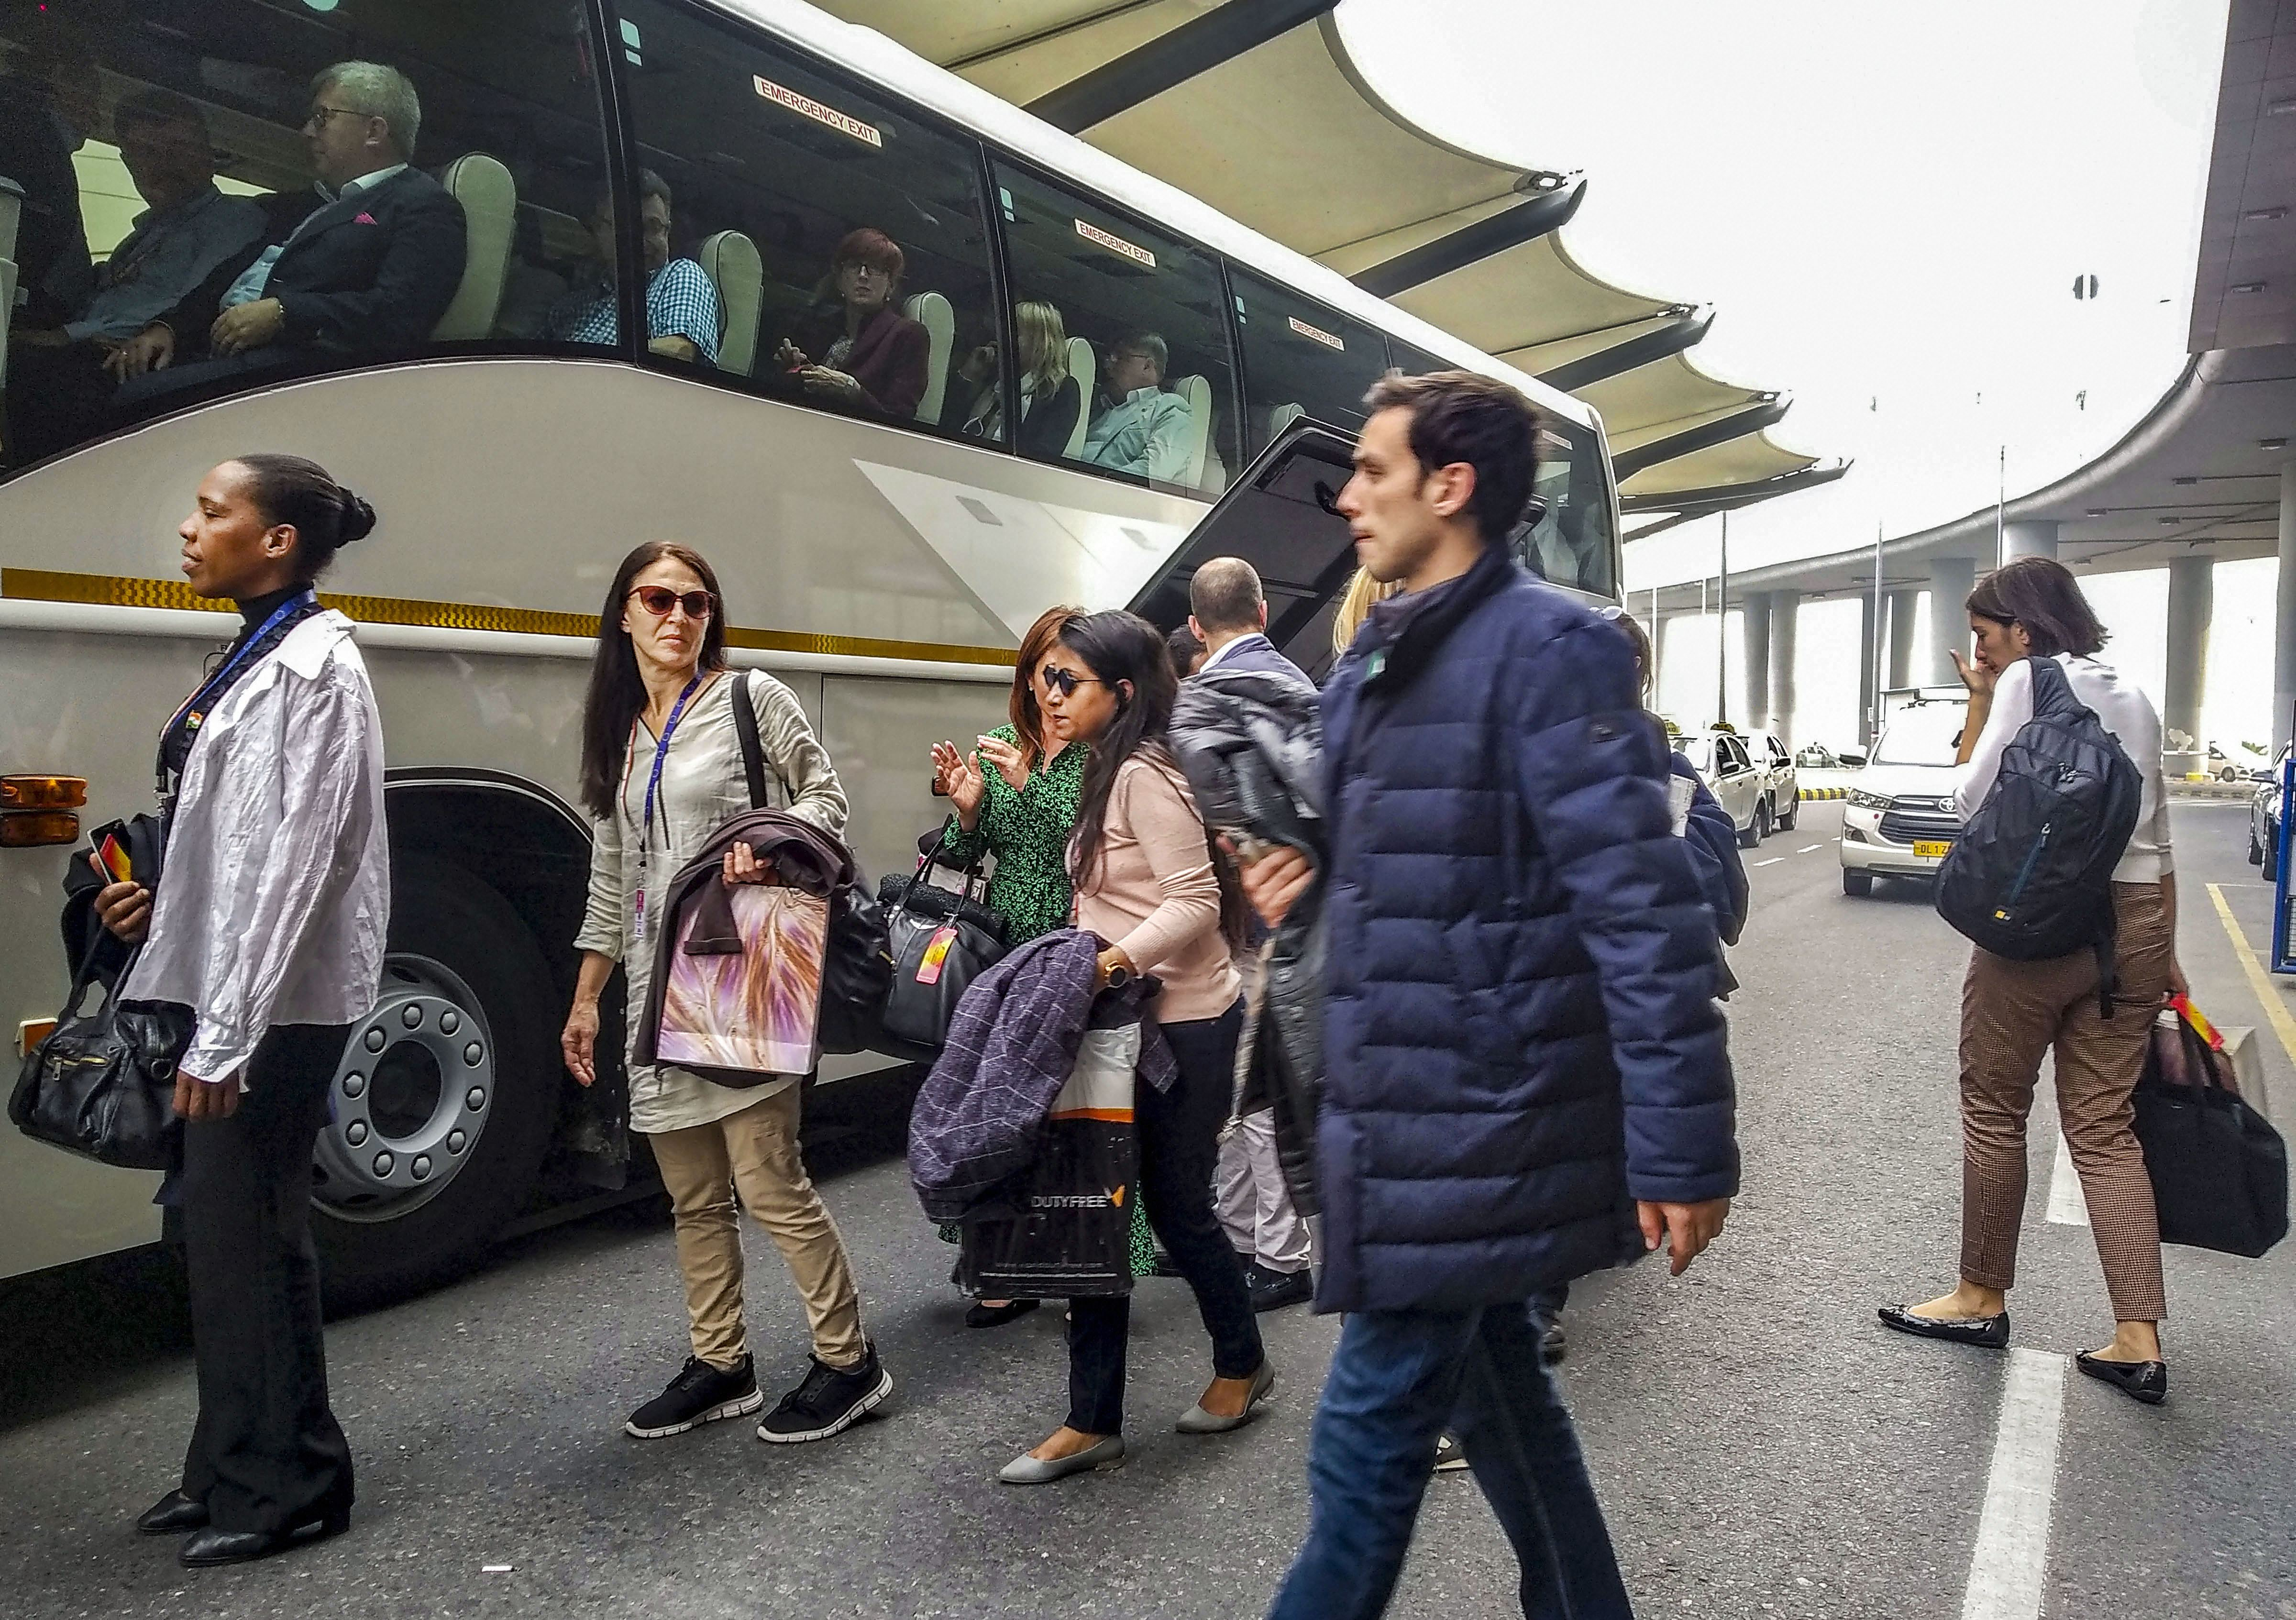 Members of European Parliament board a bus on their arrival at IGI Airport in New Delhi on October 30 after their visit to Jammu and Kashmir.